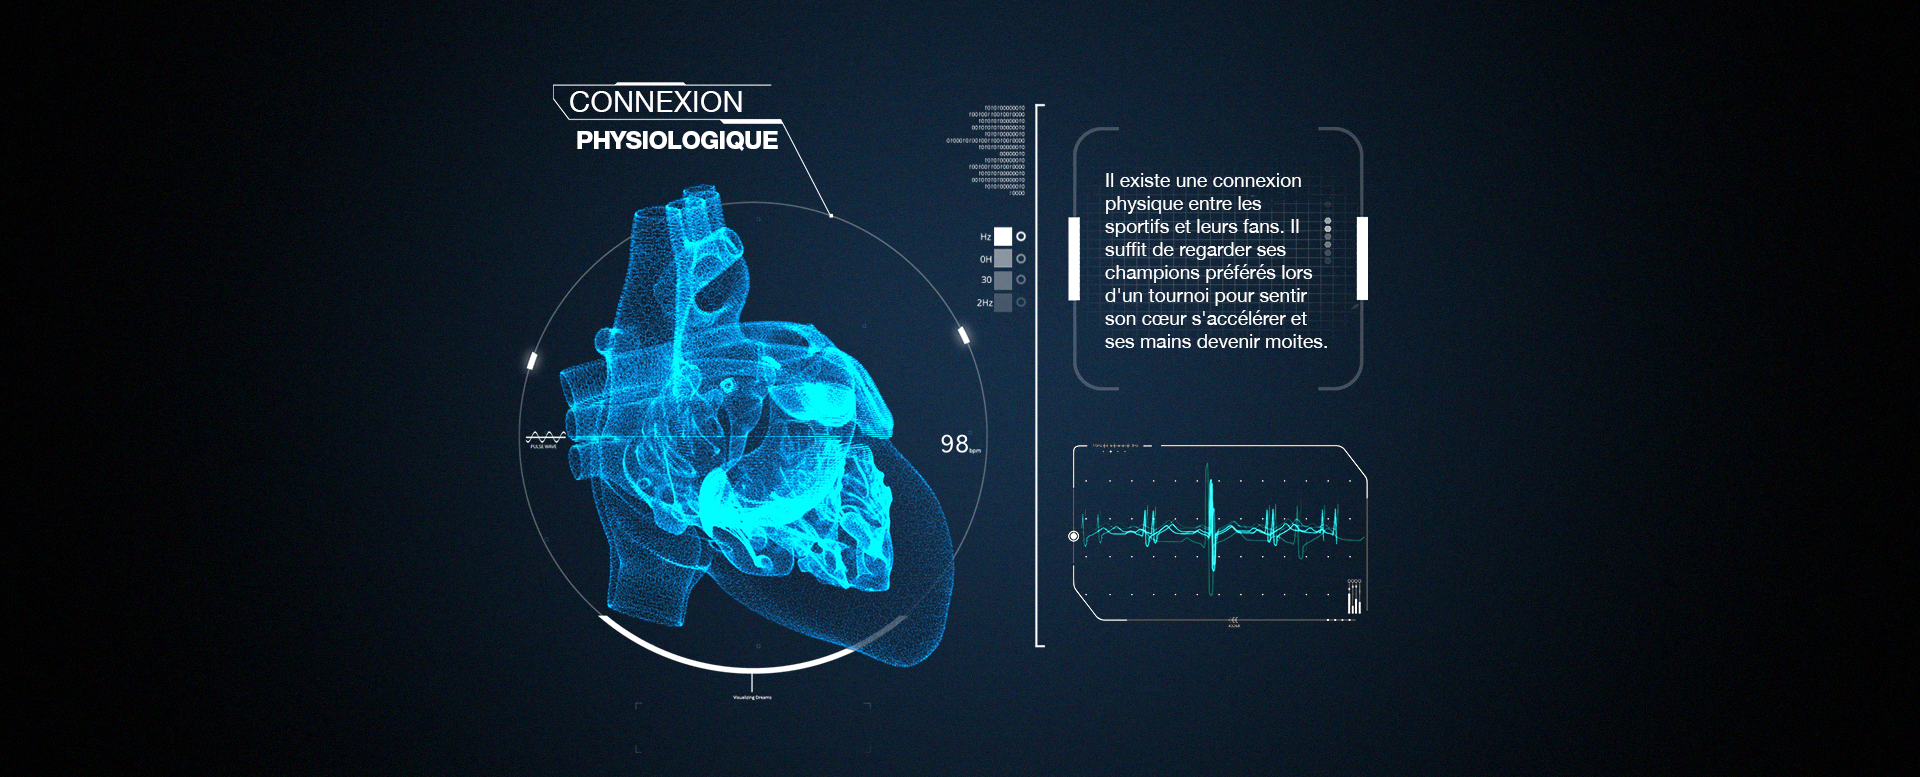 ASICS_POF_LandingPage_Panel_03_Physiological-French.jpg